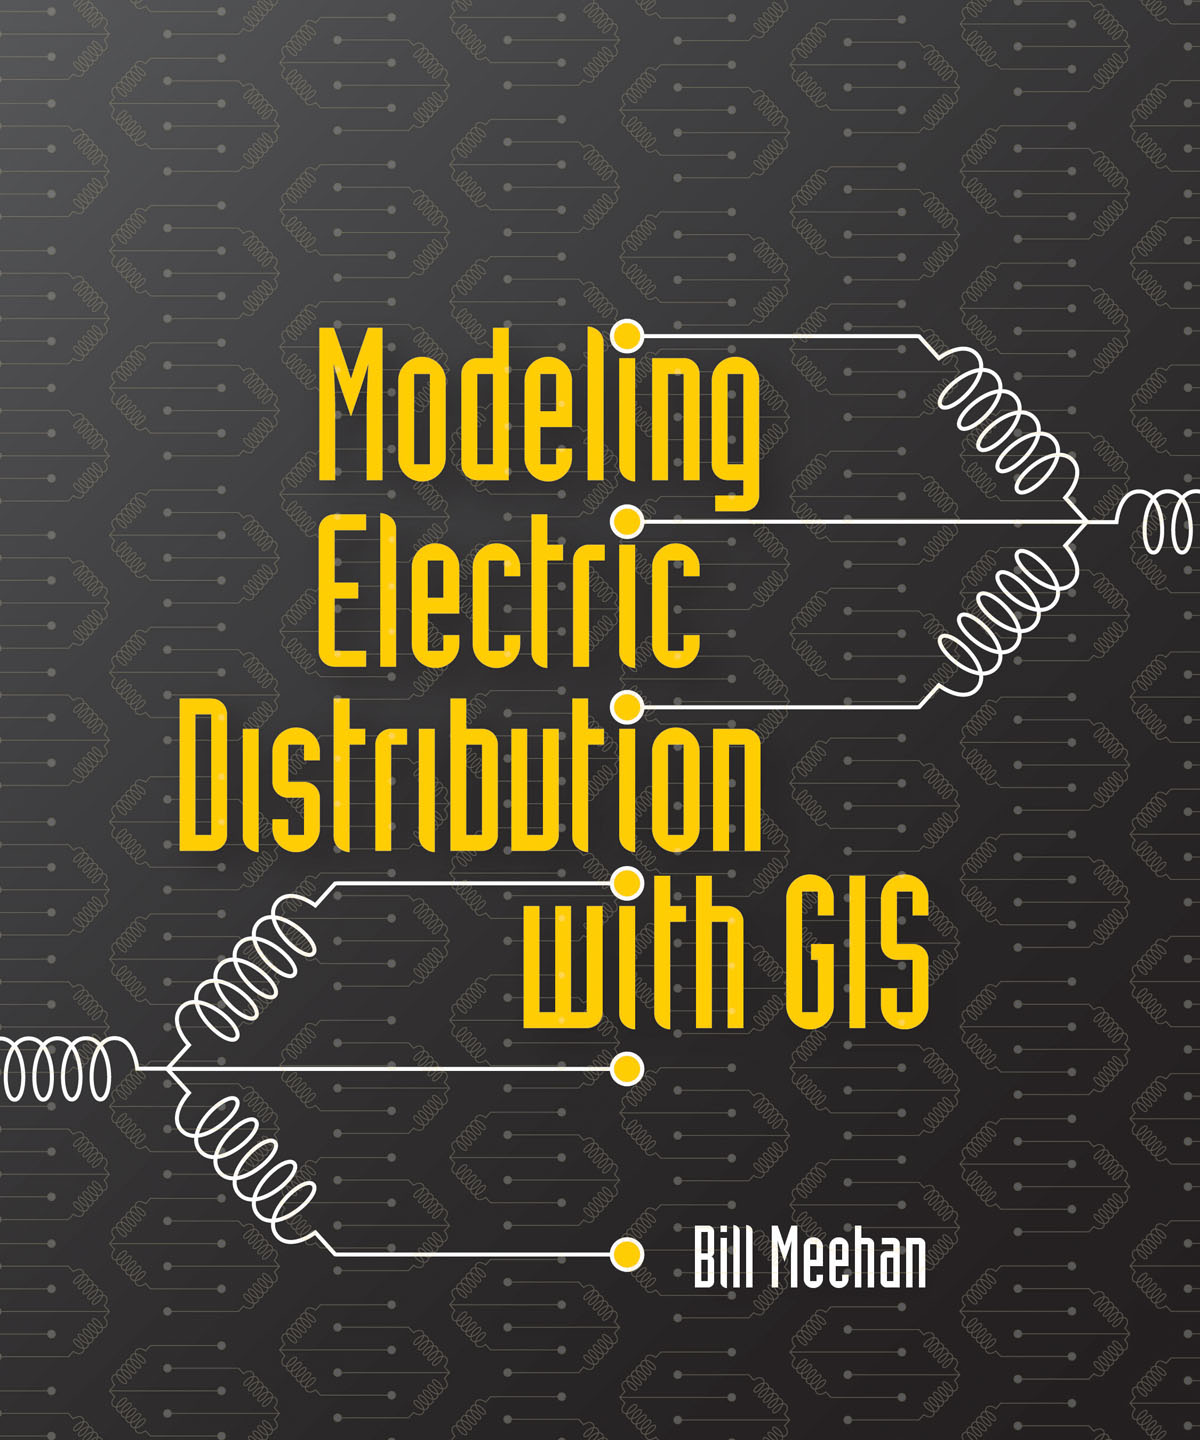 Essential Reading for Those Interested in Learning about the Many Applications of GIS in the Electric Utility Industry